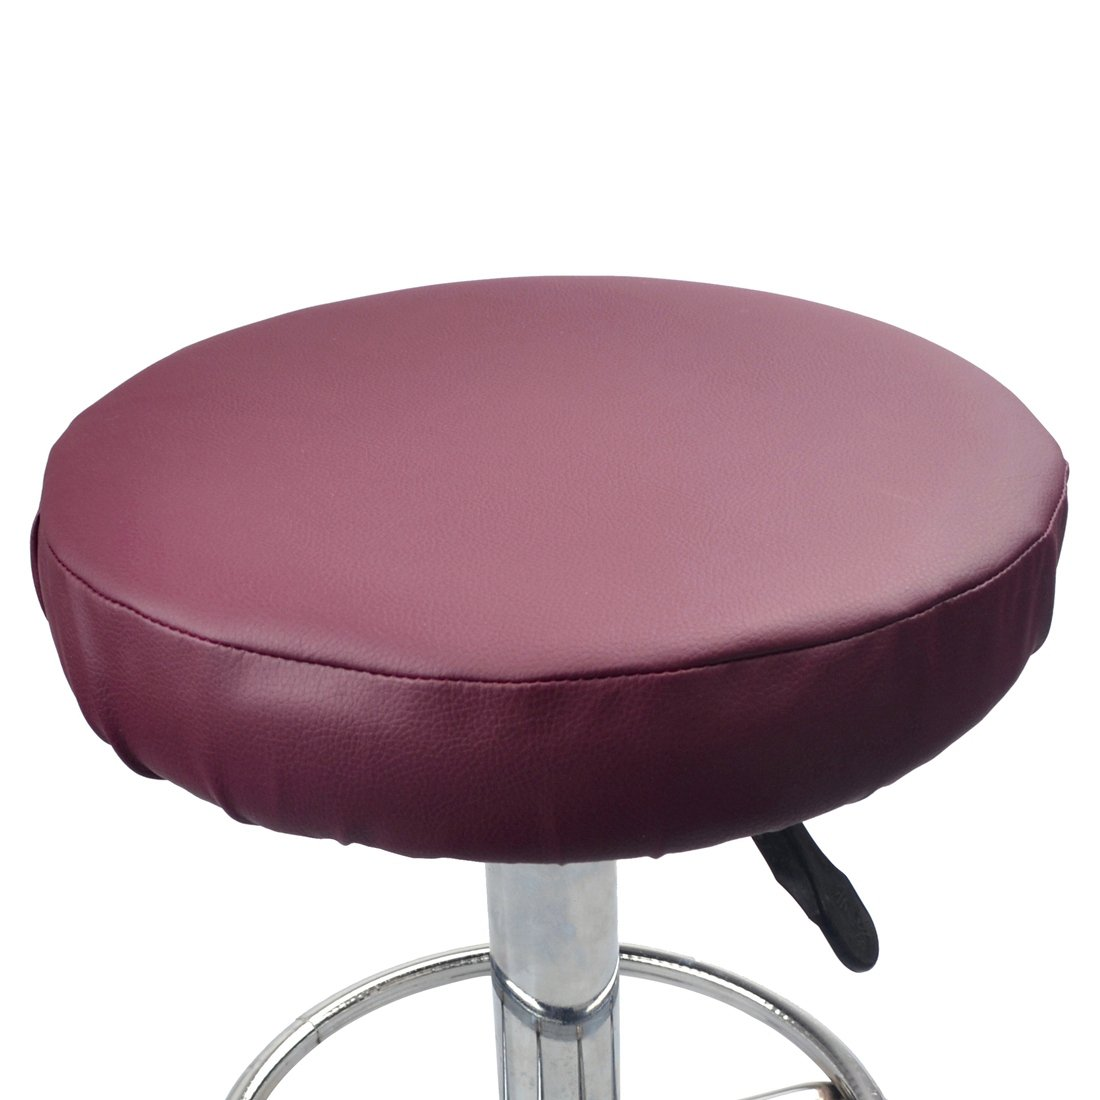 Enerhu Faux Leather Stool Cover Round Bar Stool Slipcover Waterproof Diameter 11.8